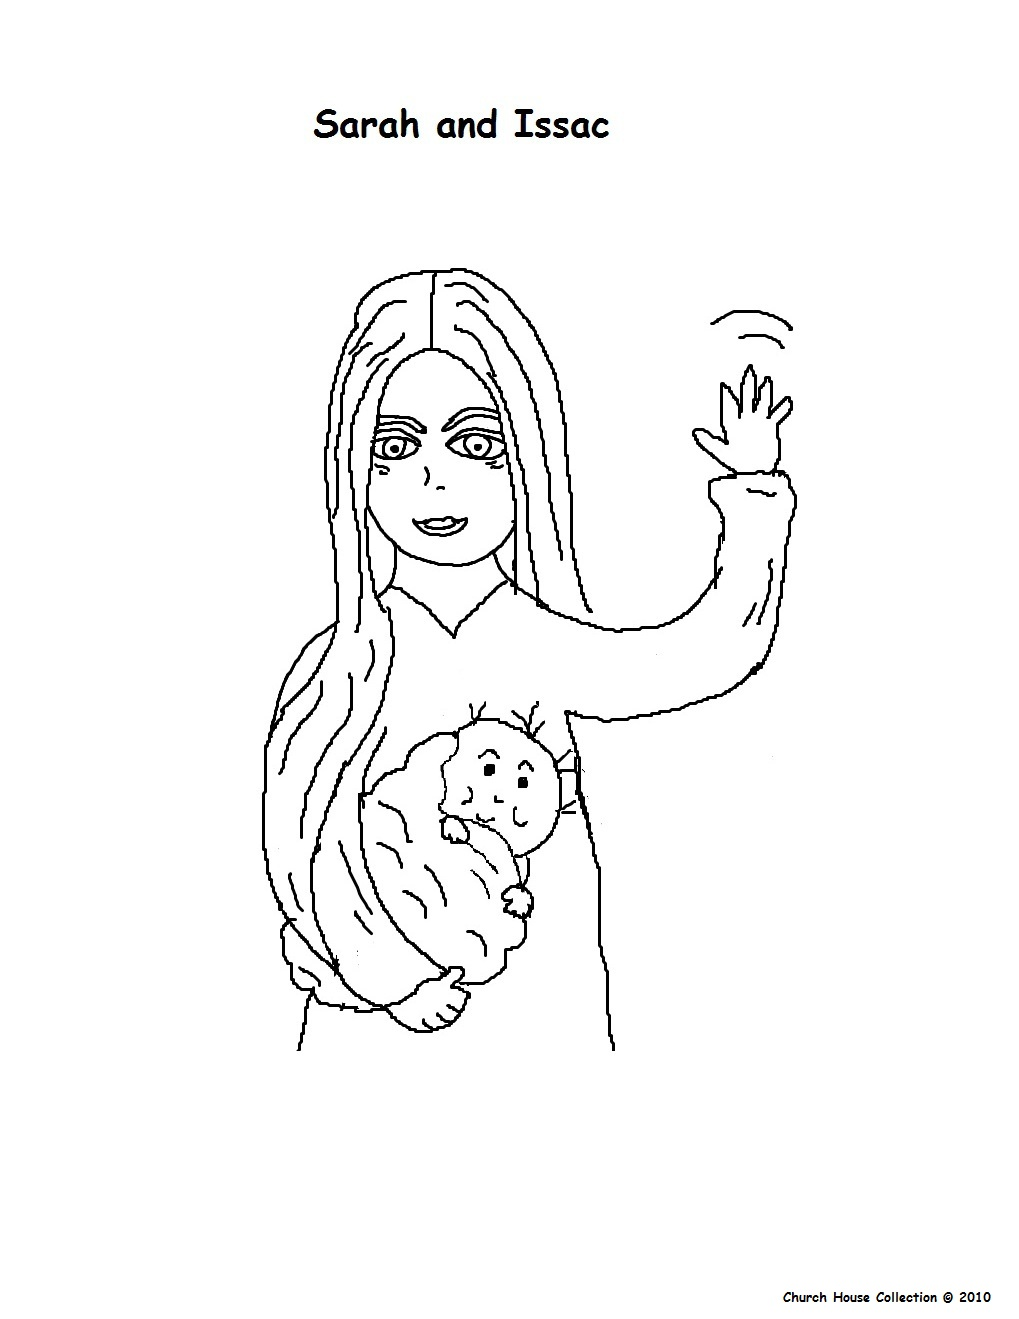 Colouring Page Of Sarah And Baby Isaac At Churchhousecollection Resources Sarah20and20Issac20coloring20page